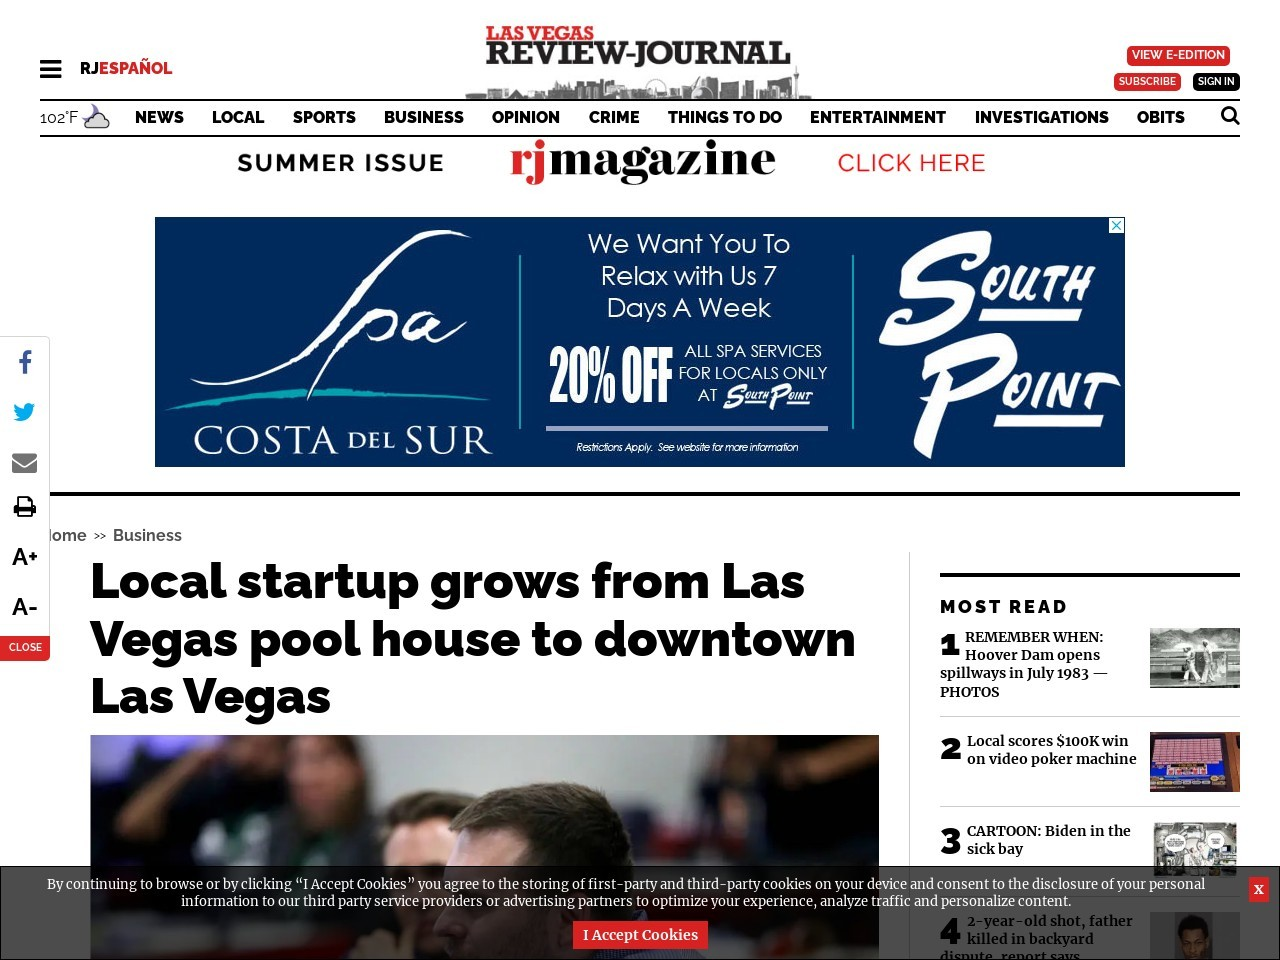 Local startup grows from Las Vegas pool house to downtown Las Vegas